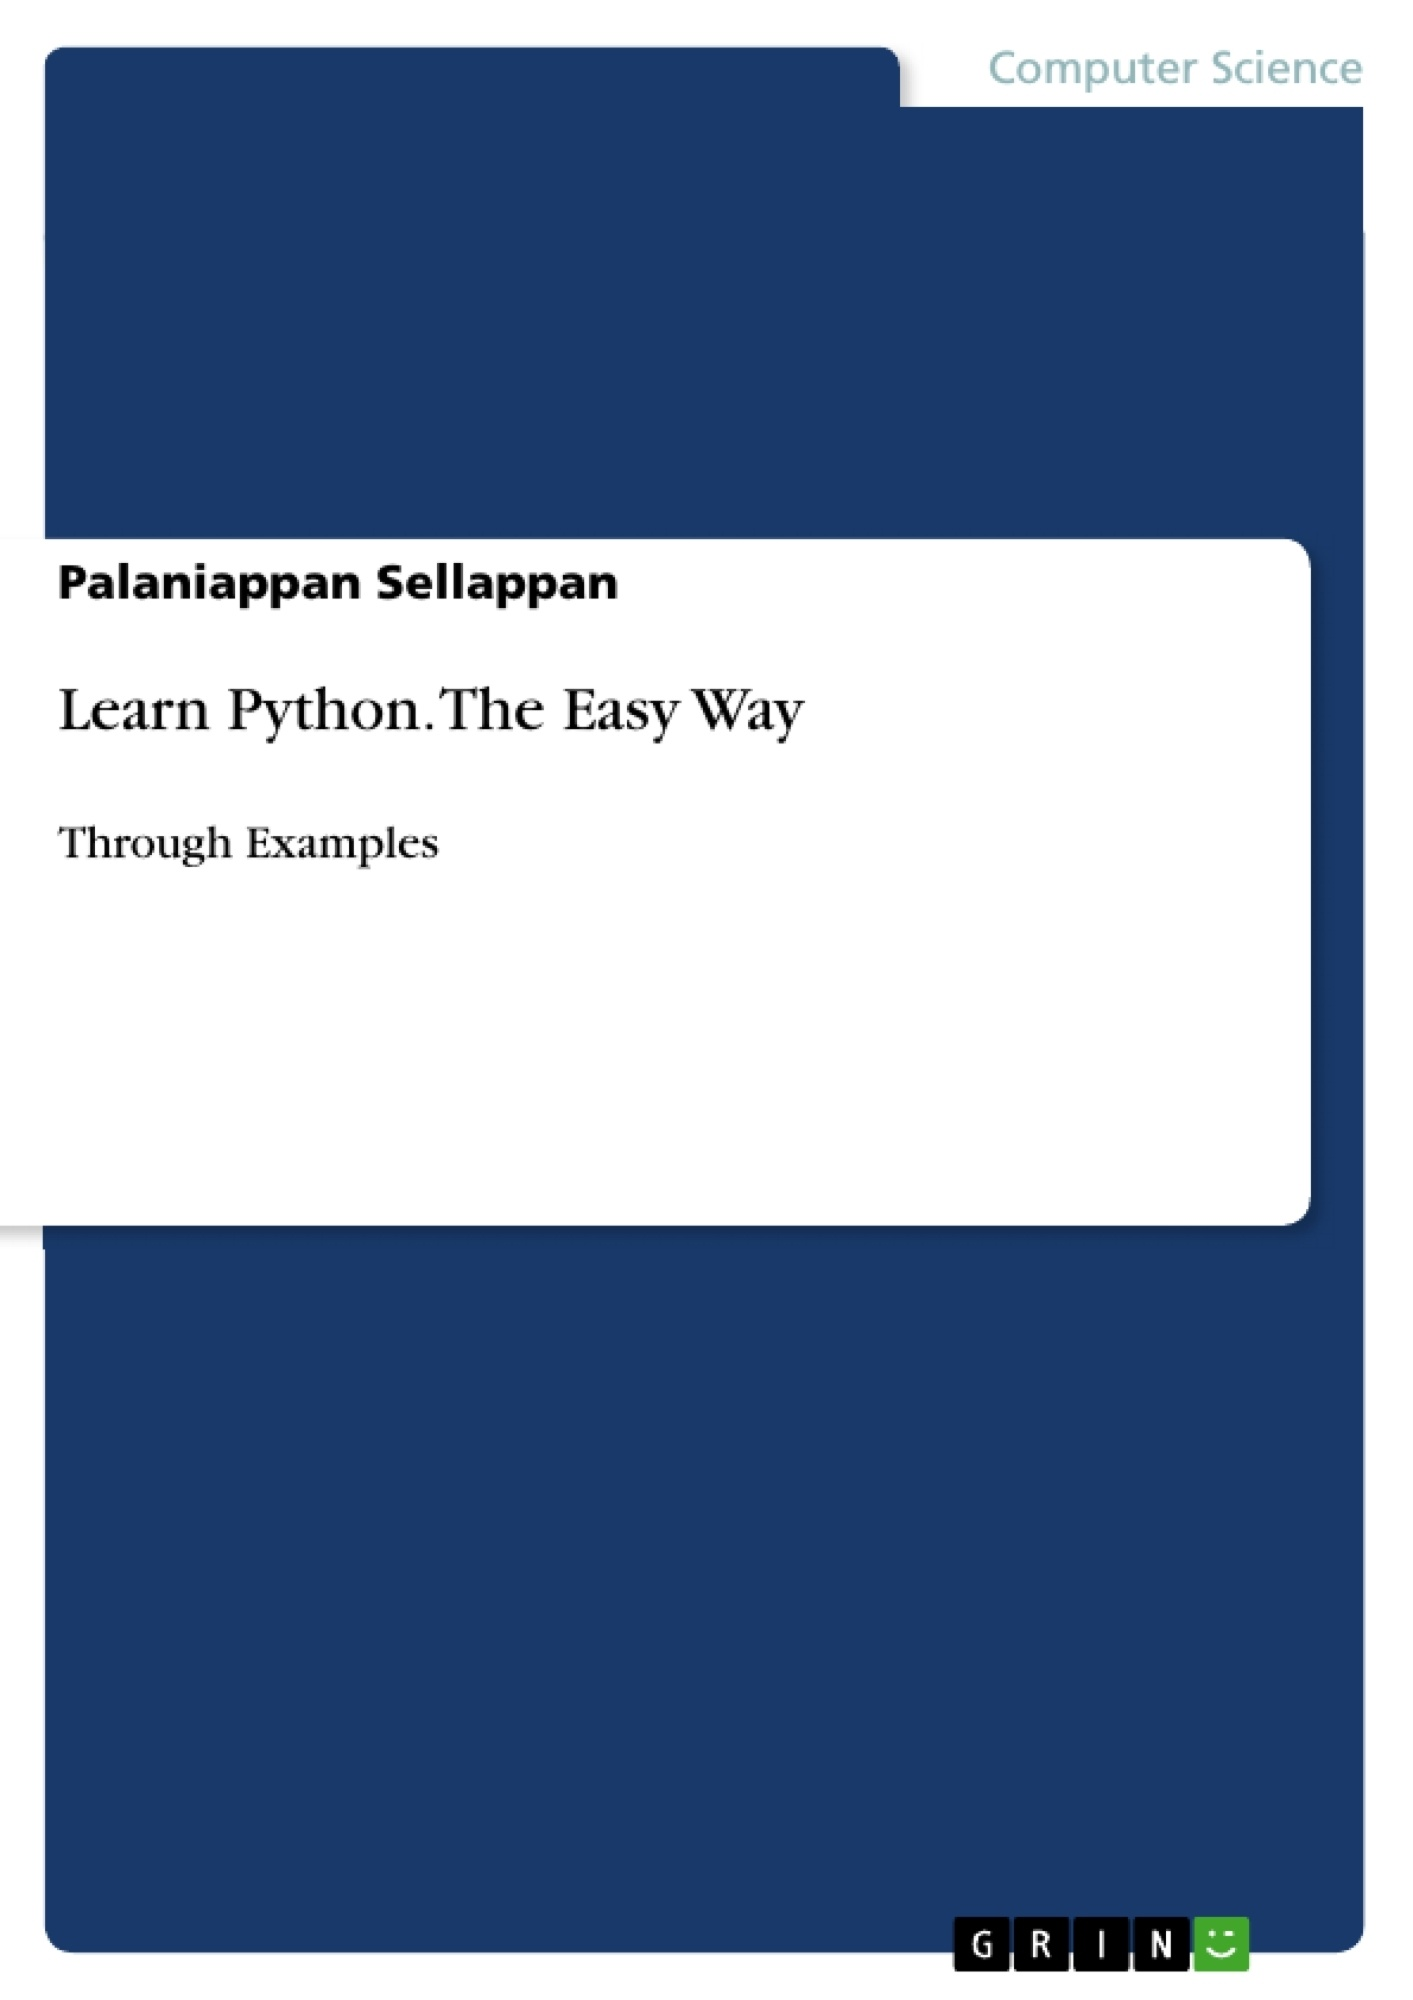 GRIN - Learn Python  The Easy Way